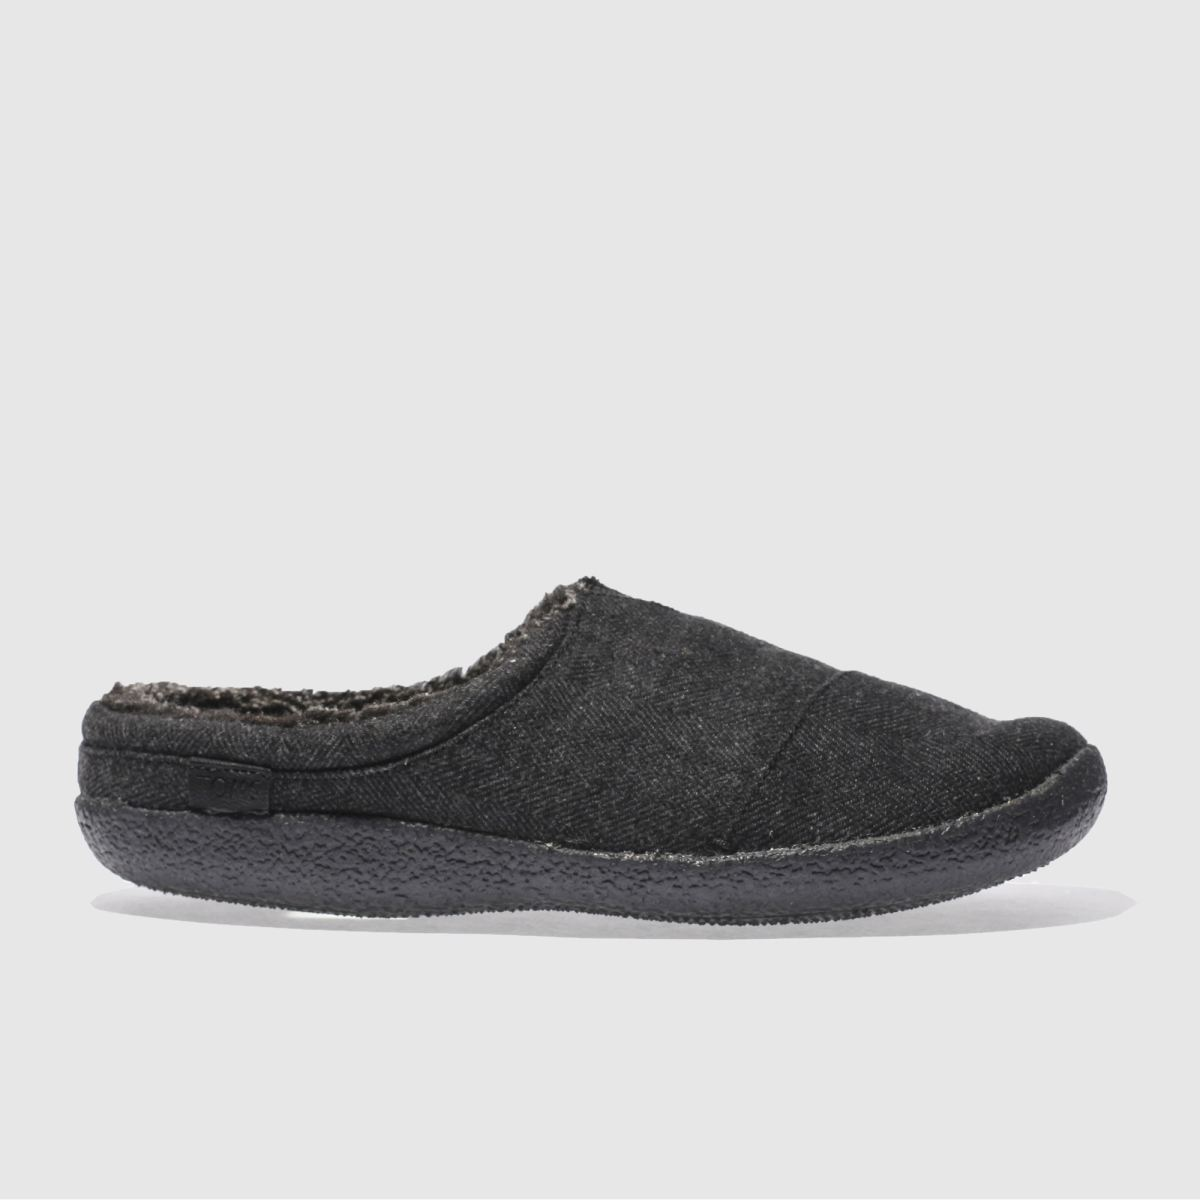 toms black & grey berkeley slipper slippers